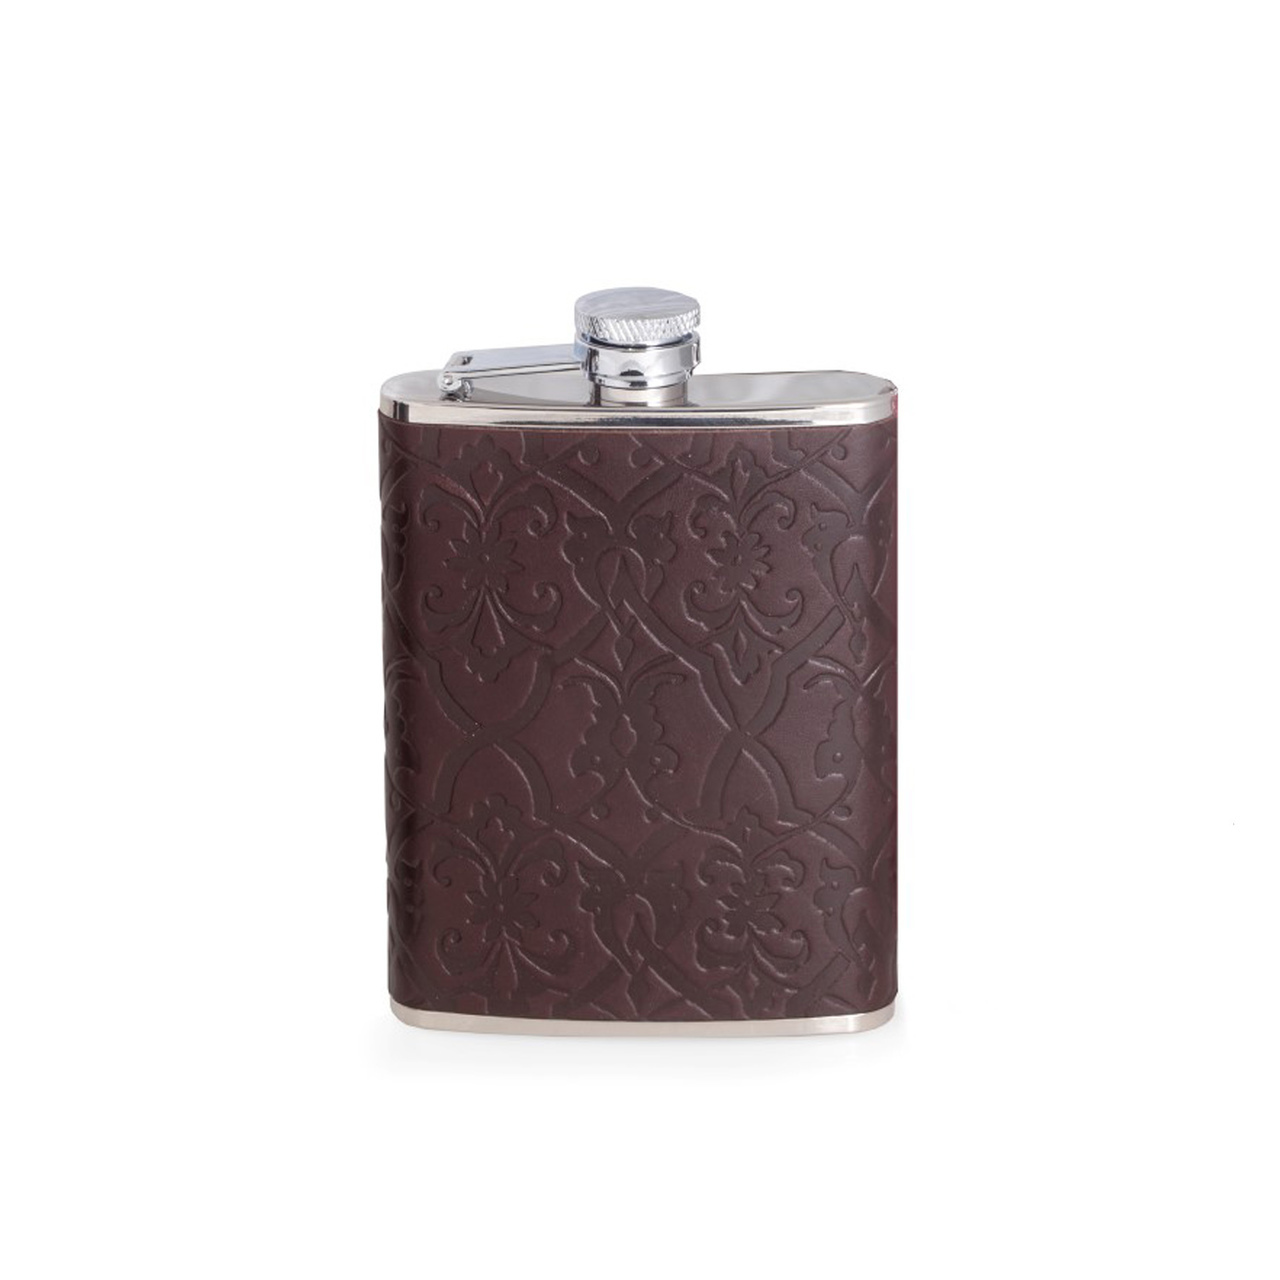 Stainless Steel Flask in Brown Leather Vintage Design